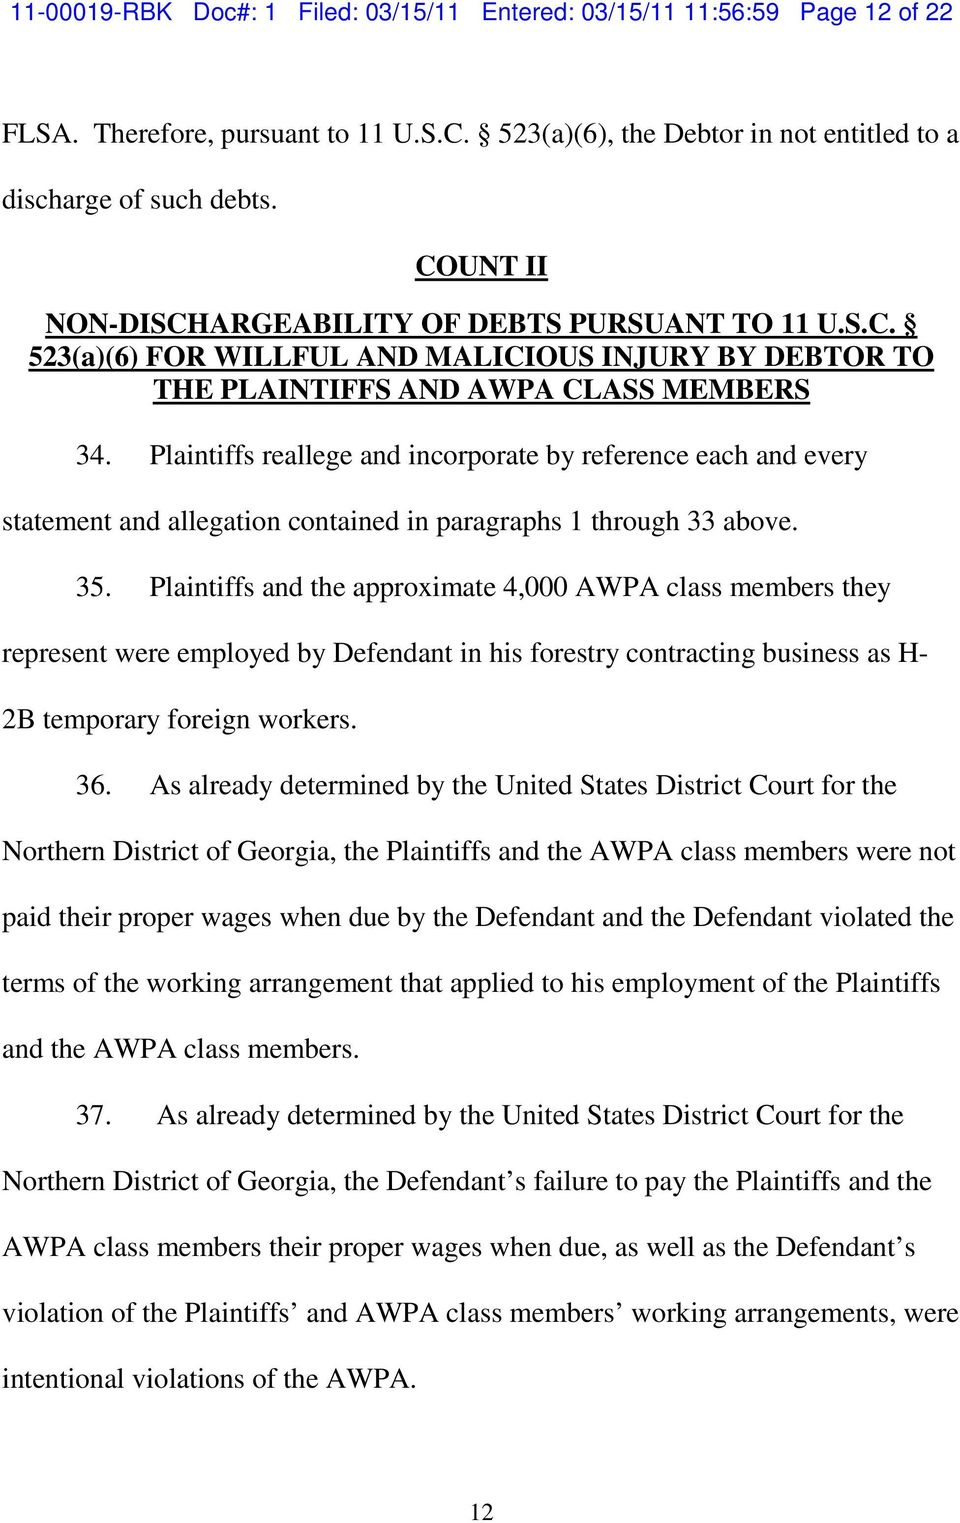 Plaintiffs reallege and incorporate by reference each and every statement and allegation contained in paragraphs 1 through 33 above. 35.